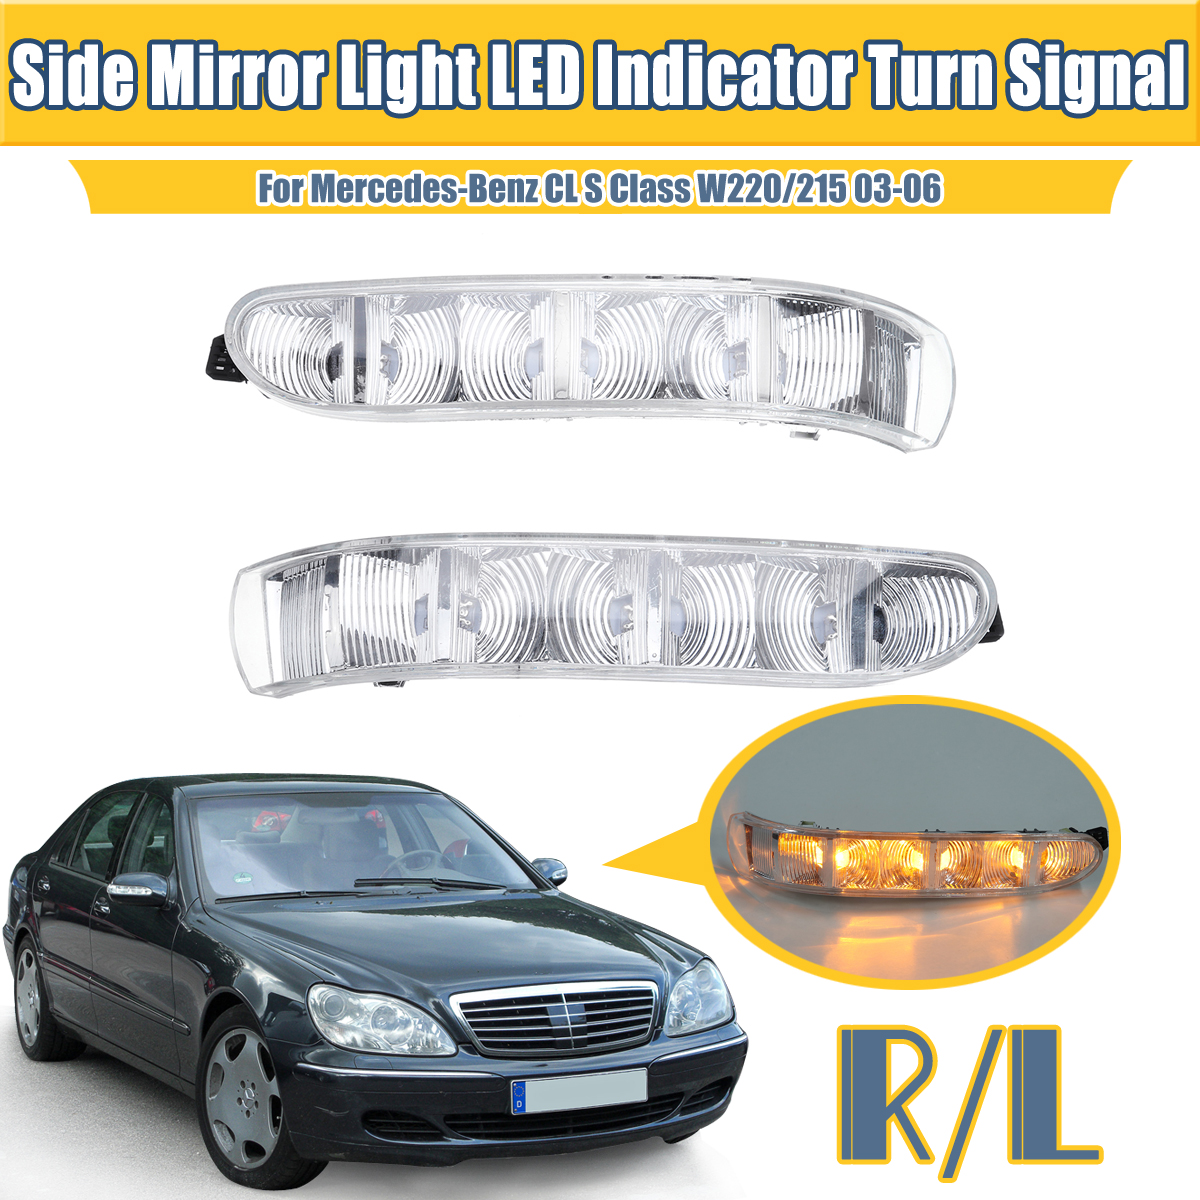 Car LED Door Side Mirror Lamp Turn Signal Lights for Mercedes-Benz CL S Class W220/215 2003-2006